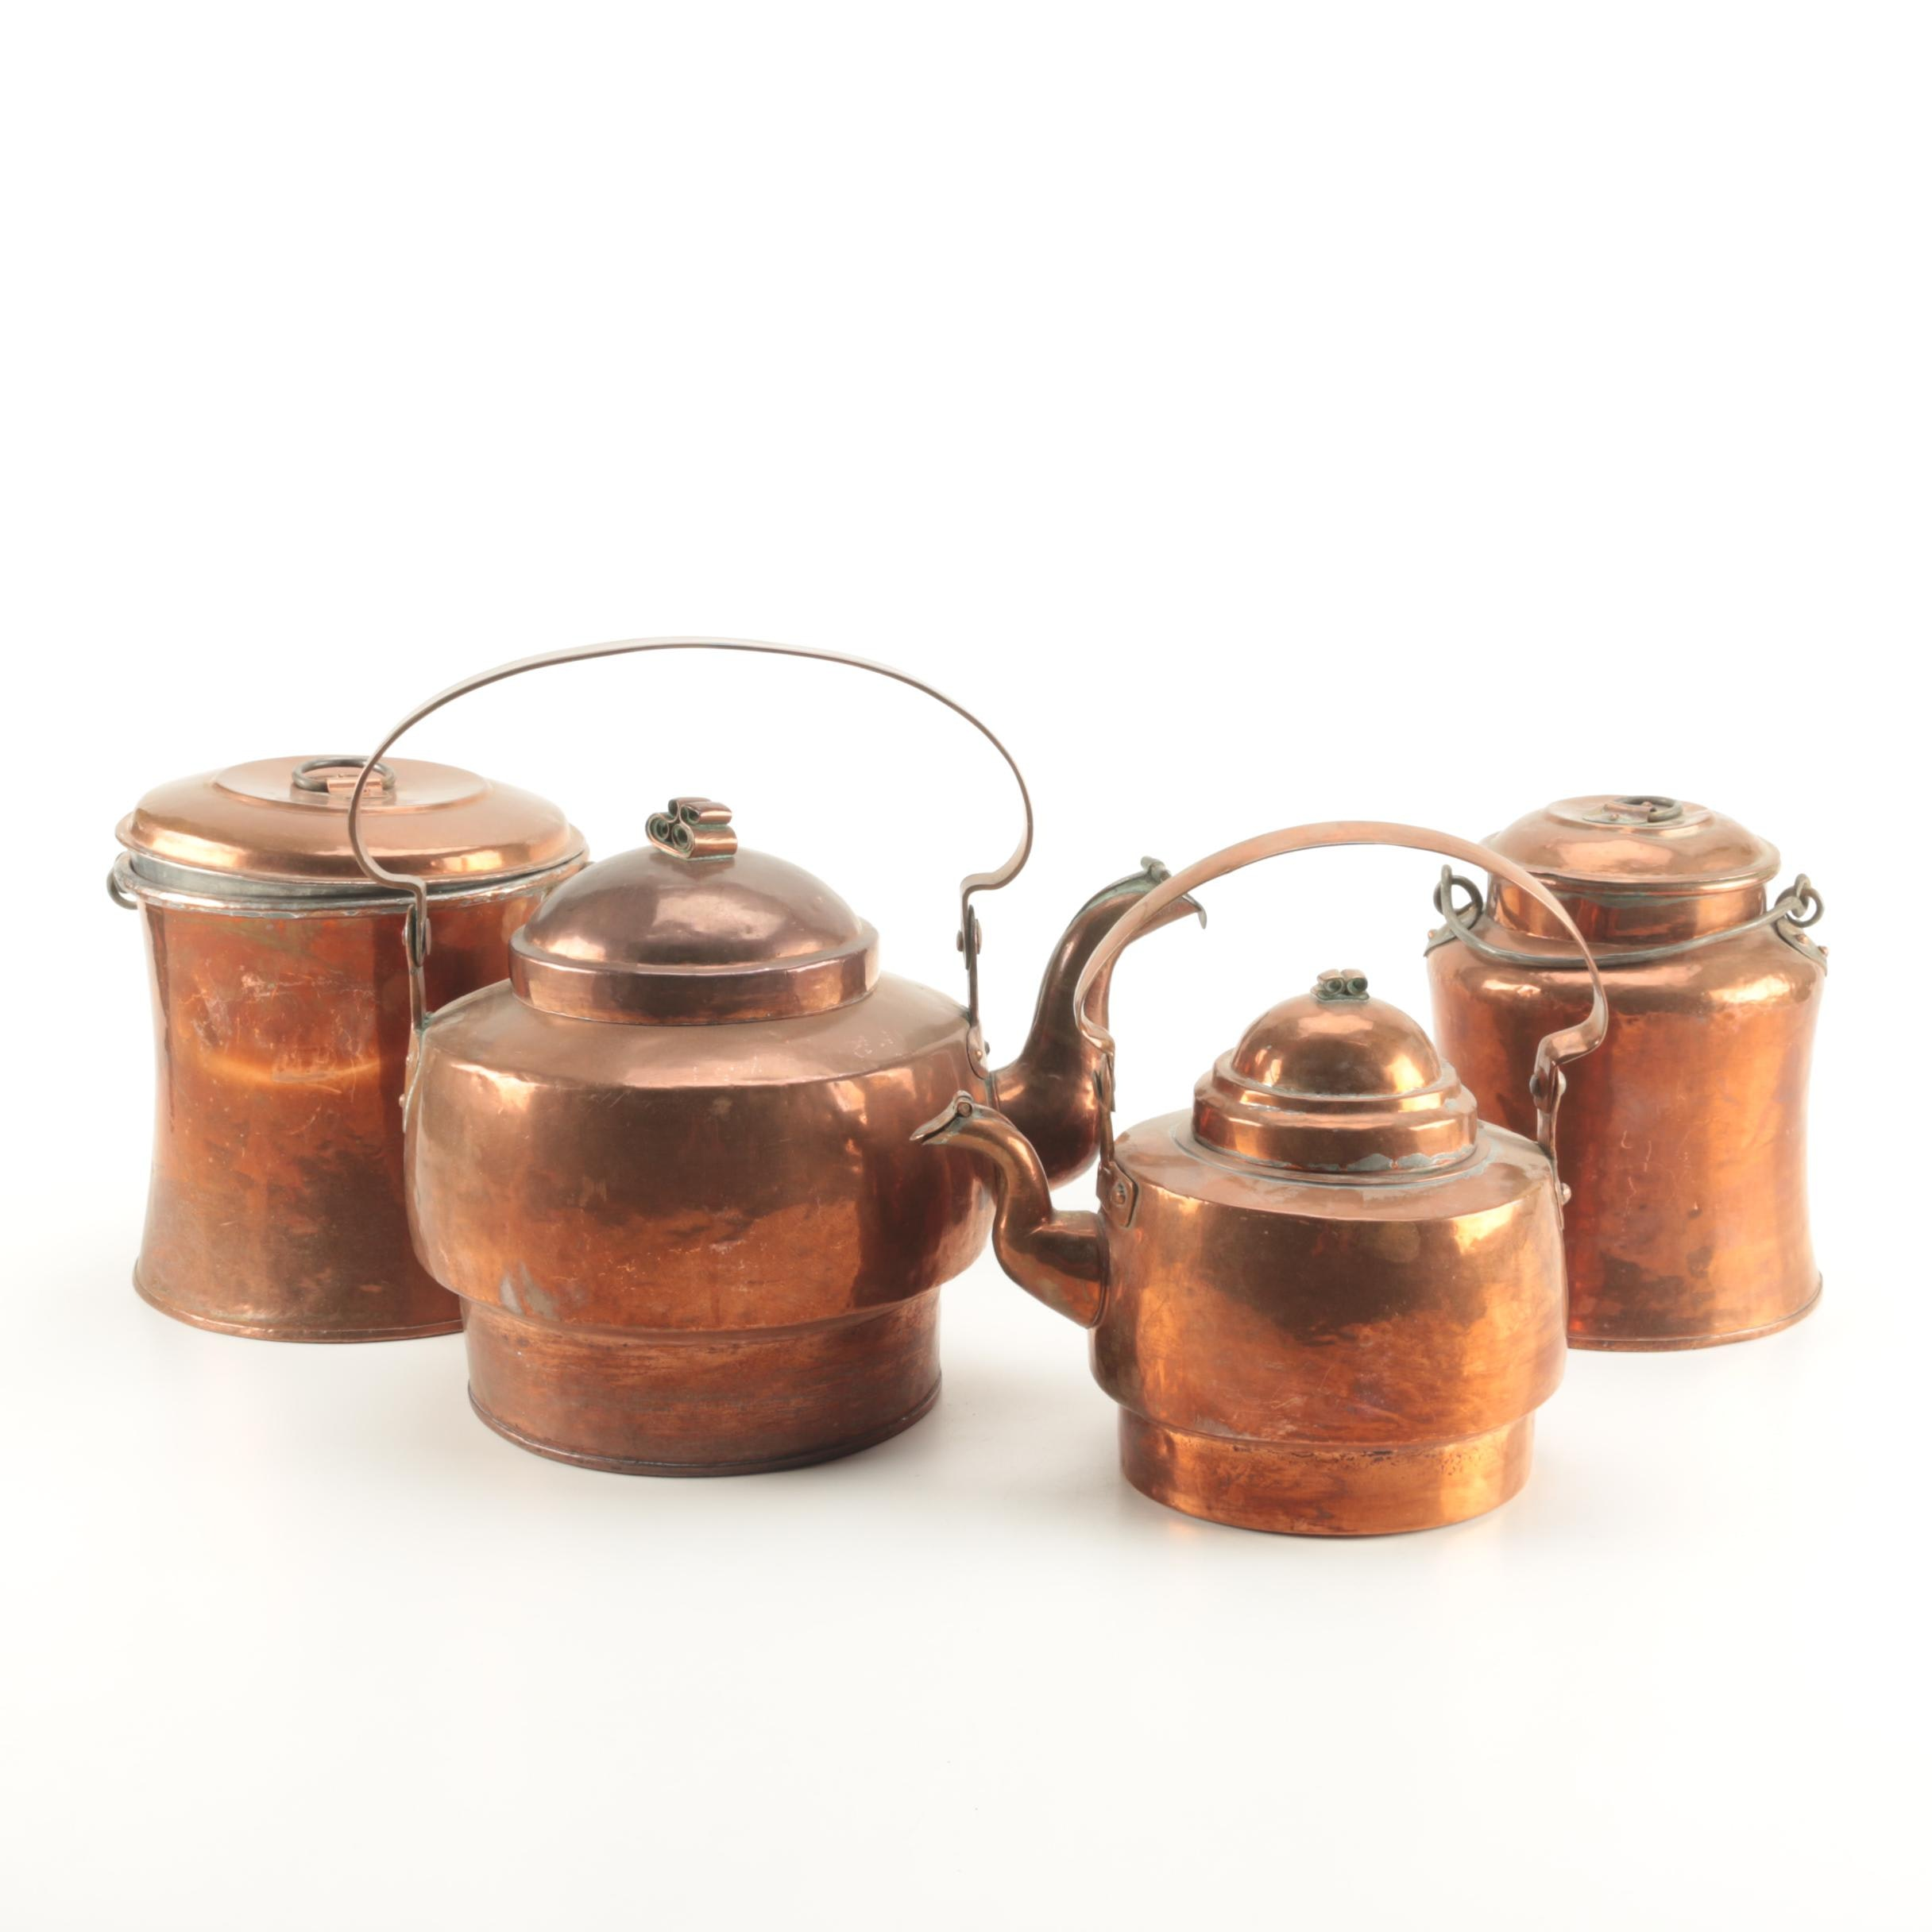 Collection of Copper Kettles and Kitchenware